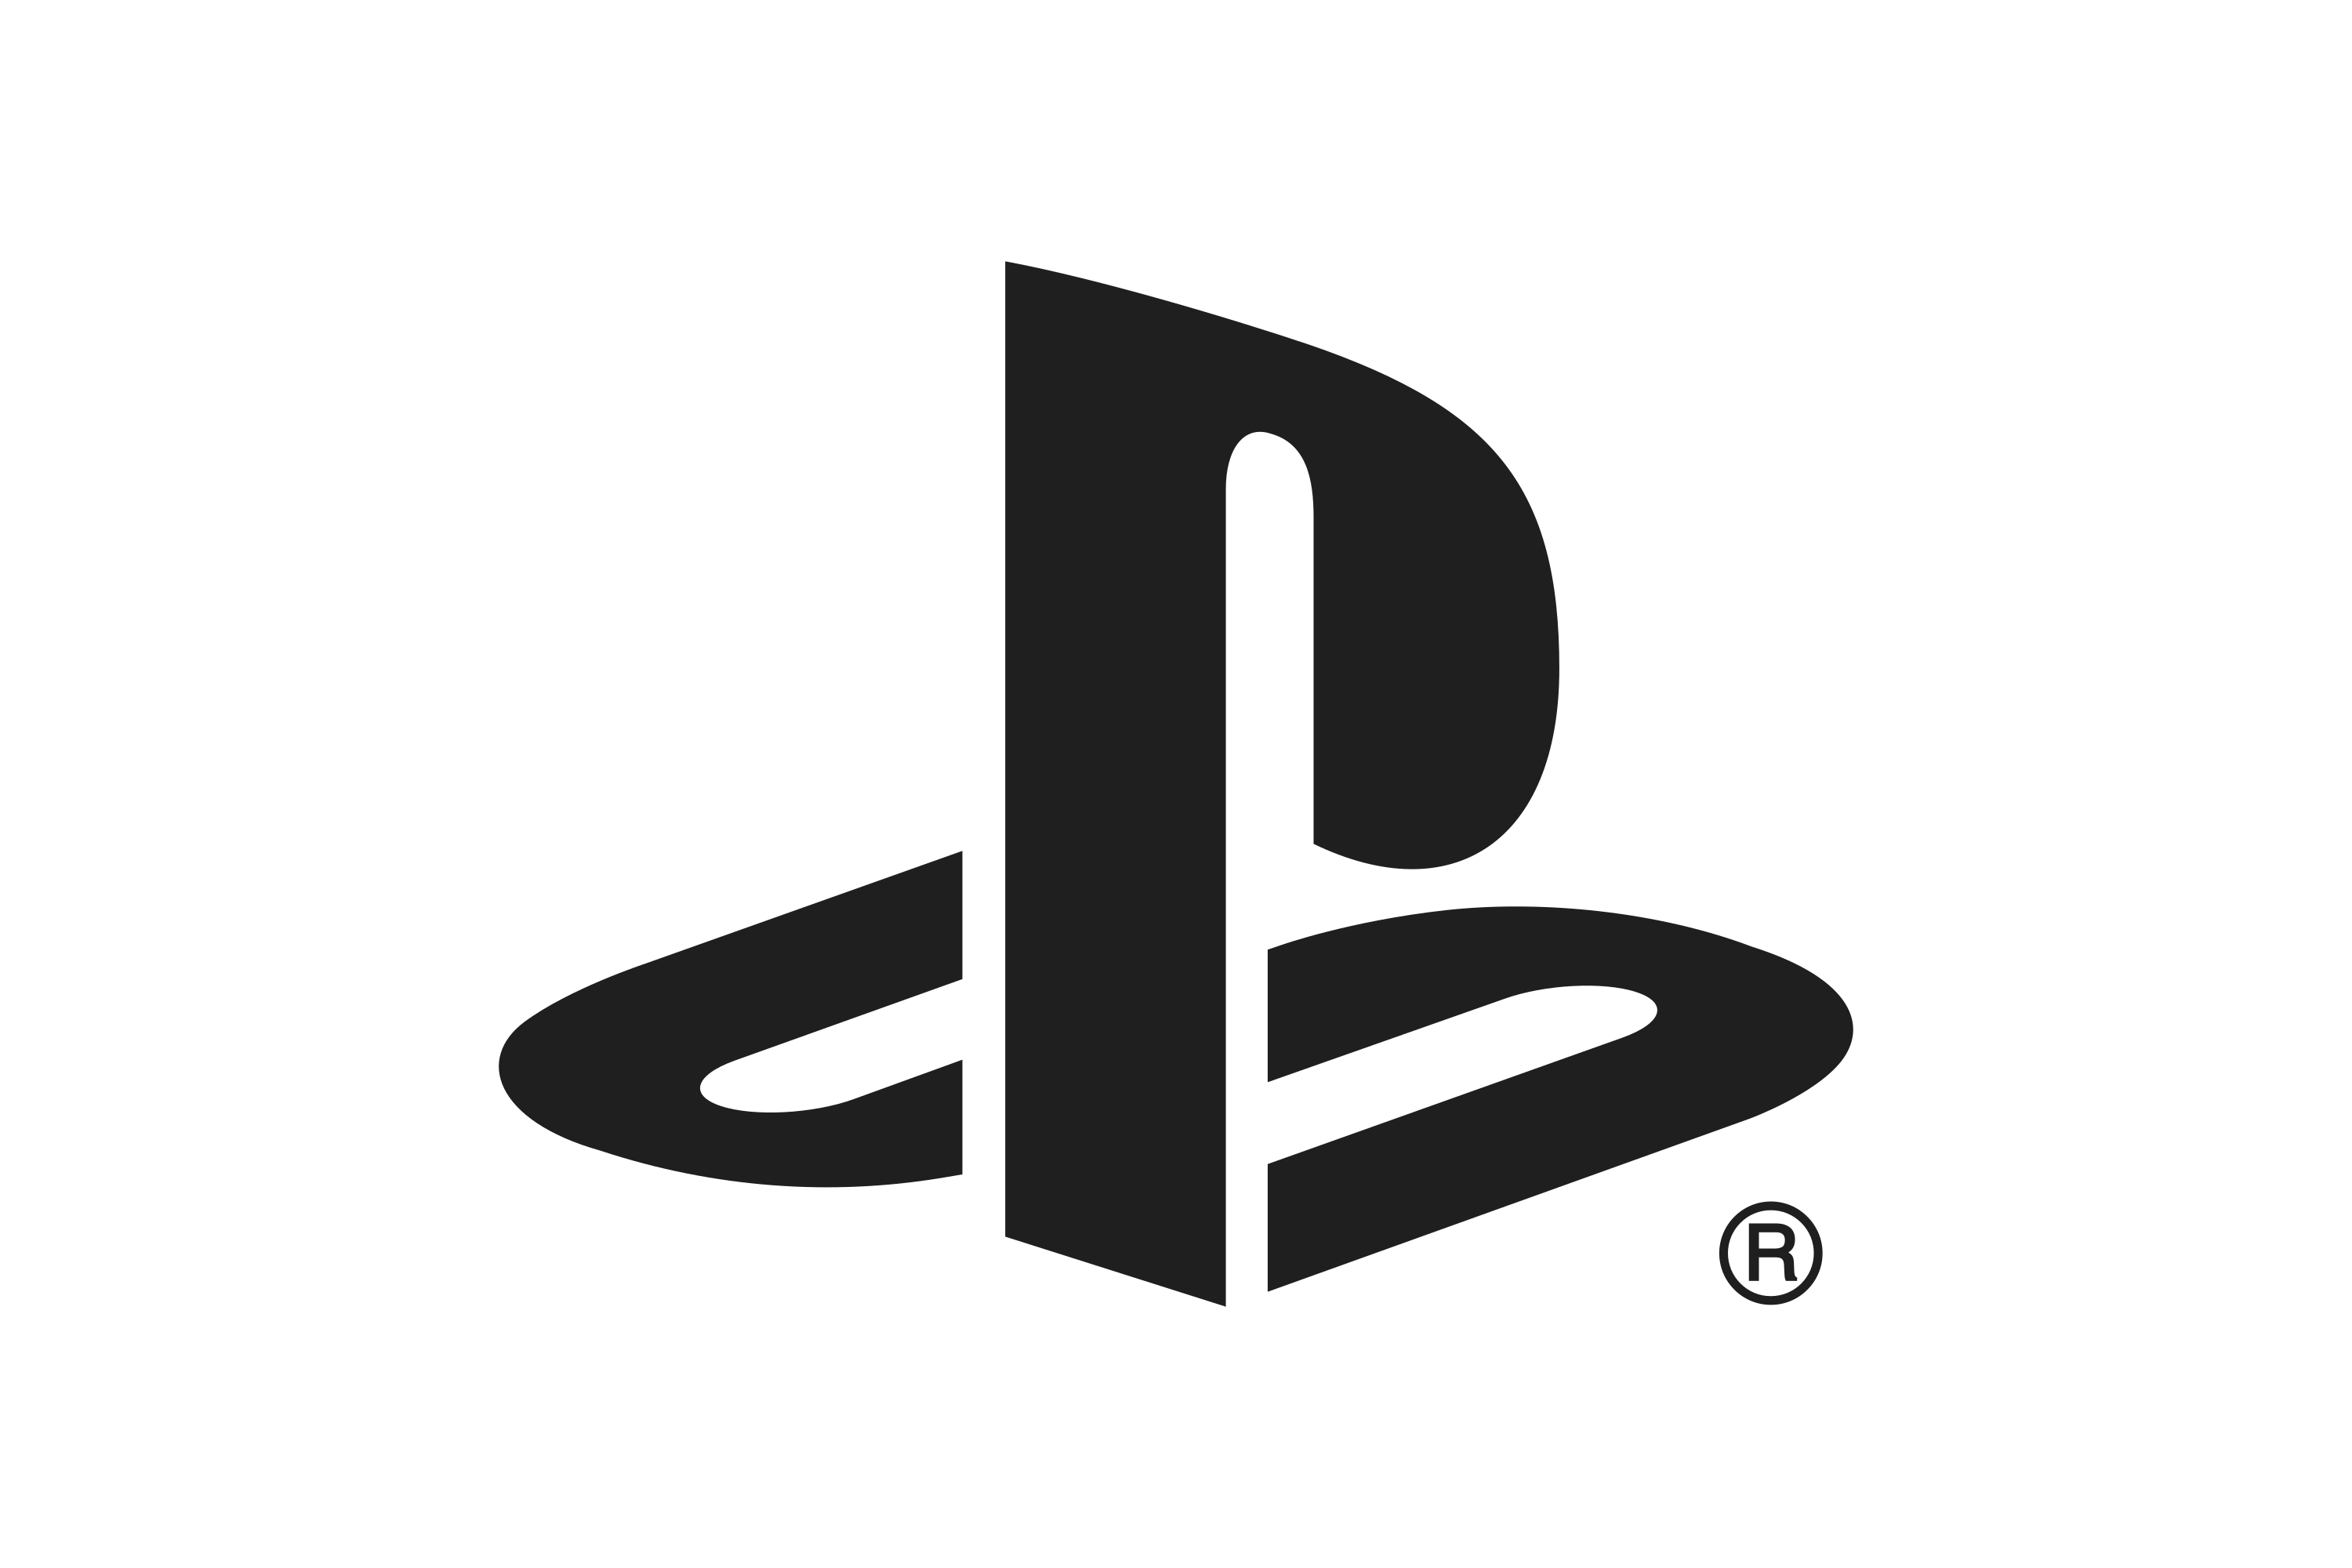 Download Playstation Ps Logo In Svg Vector Or Png File Format Logo Wine Playstation was founded in 1994, in japan by ken kutaragi, a sony executive who managed one of the company's hardware engineering divisions. download playstation ps logo in svg